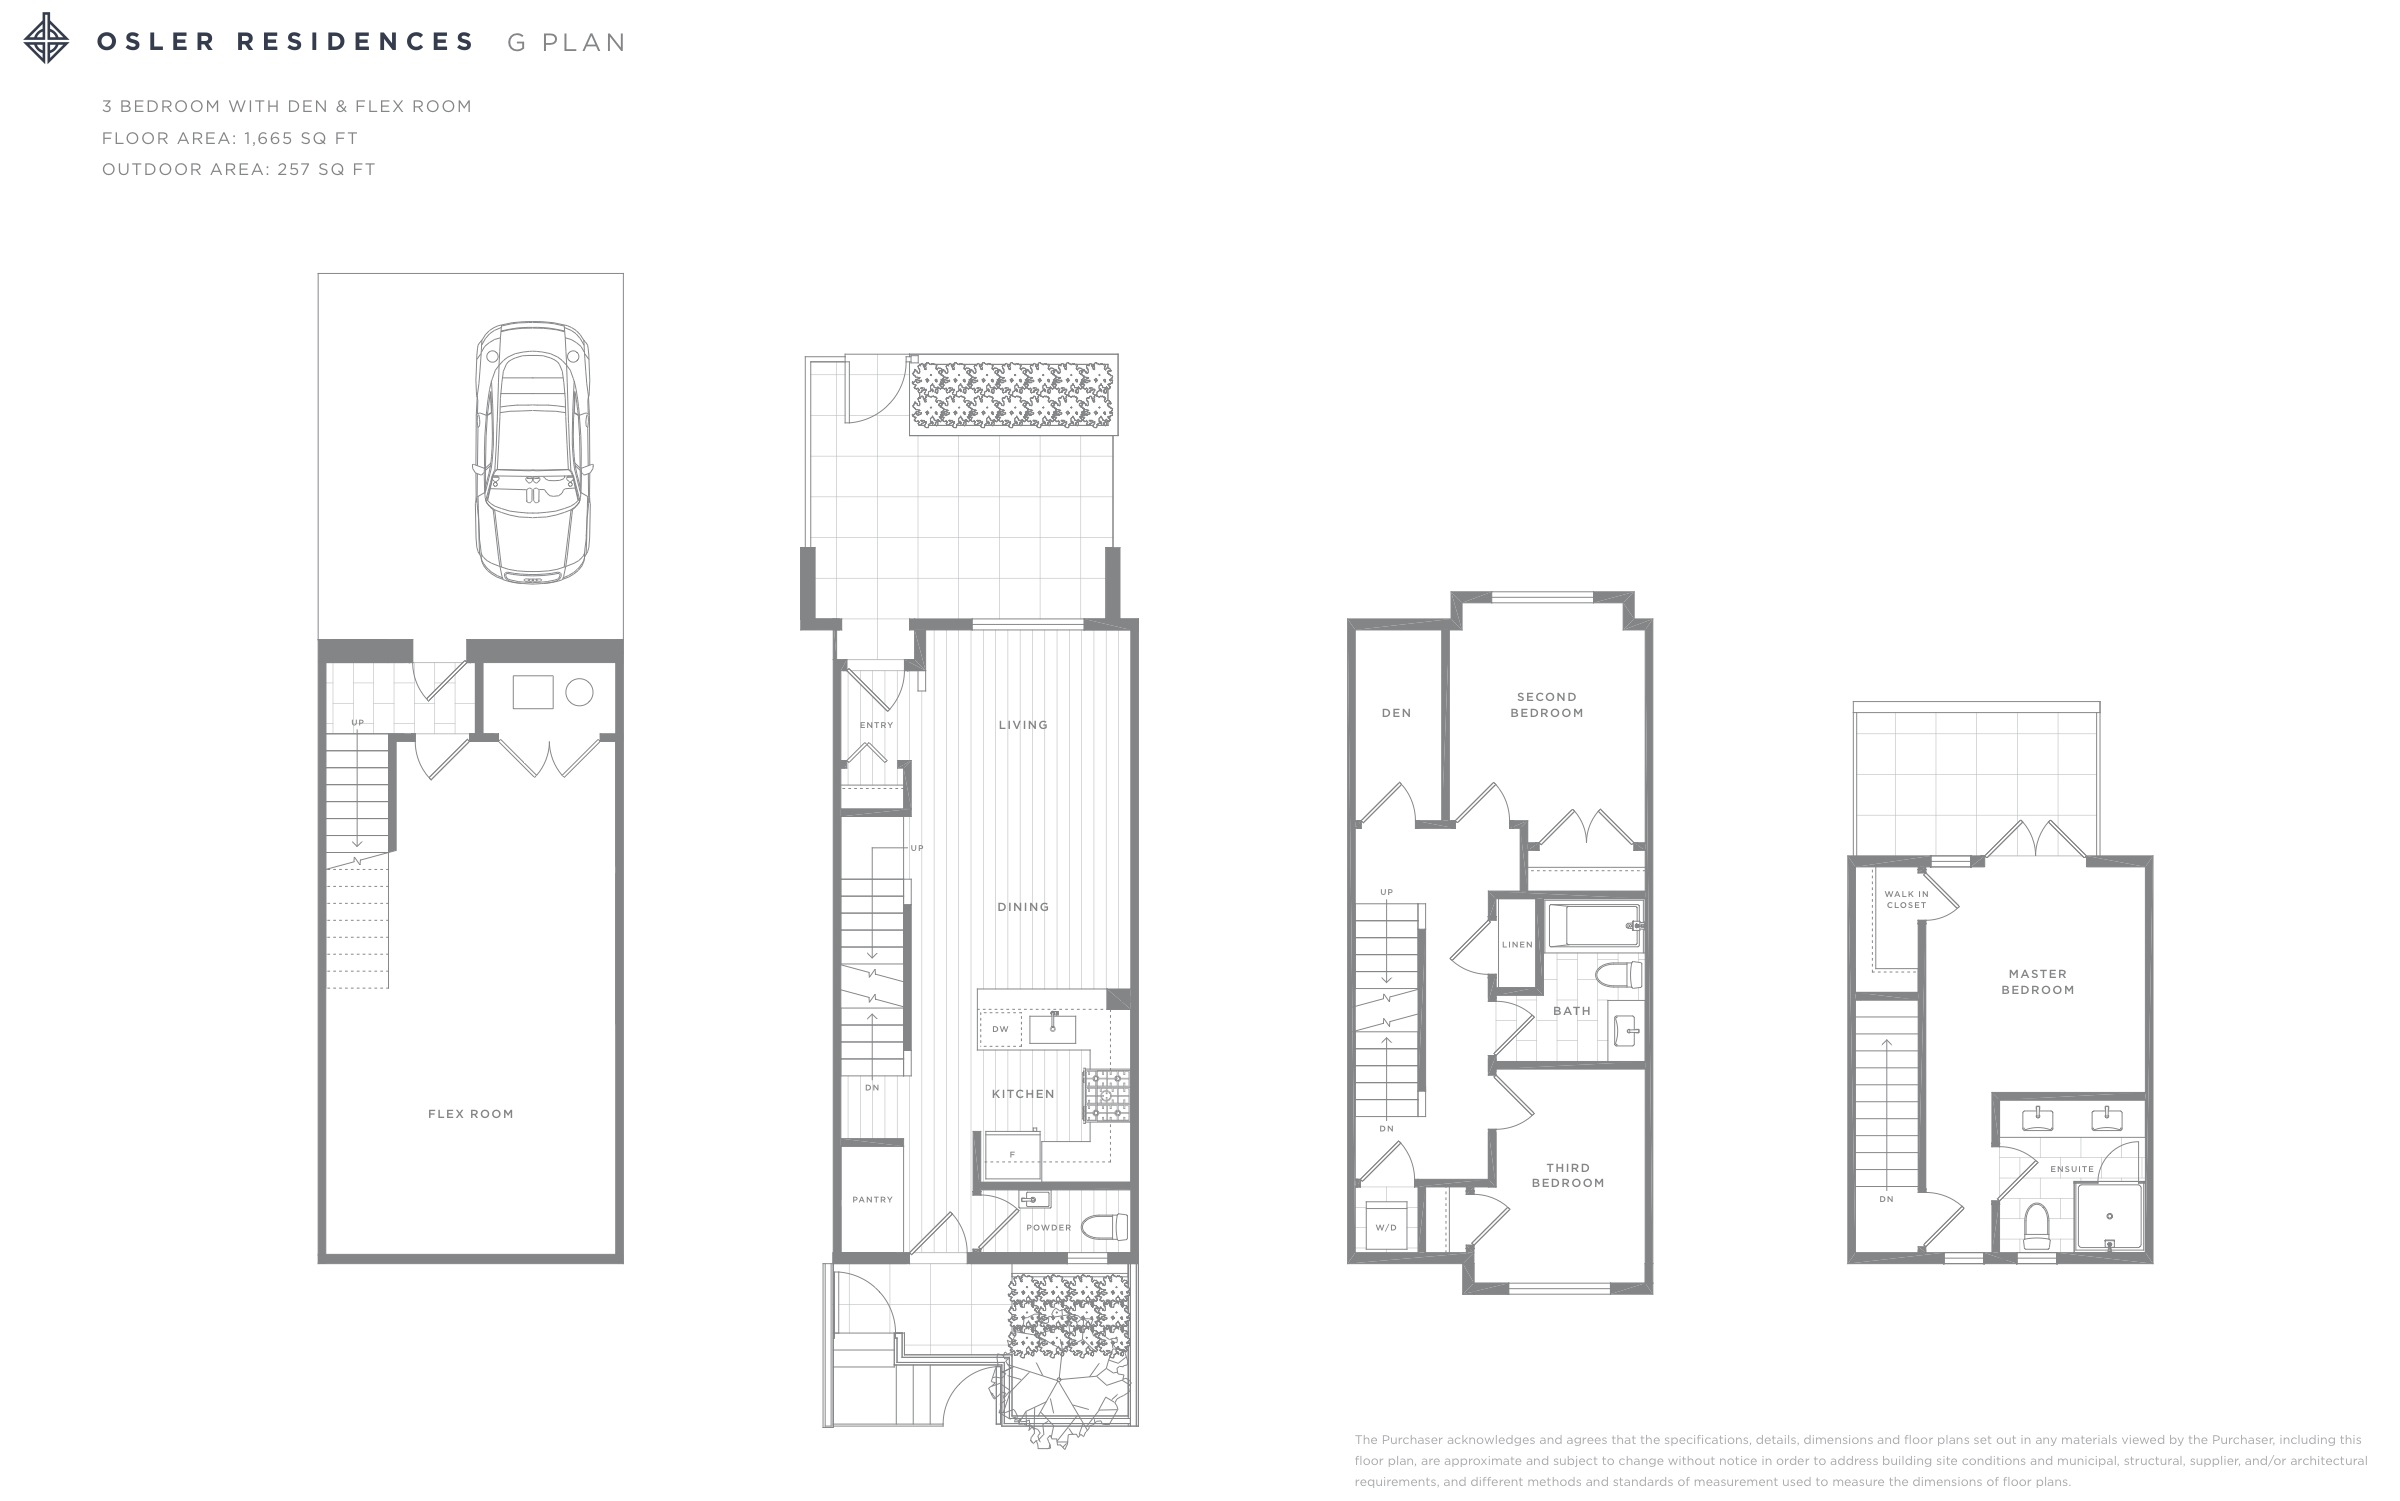 Osler Residences G Plan Floorplan